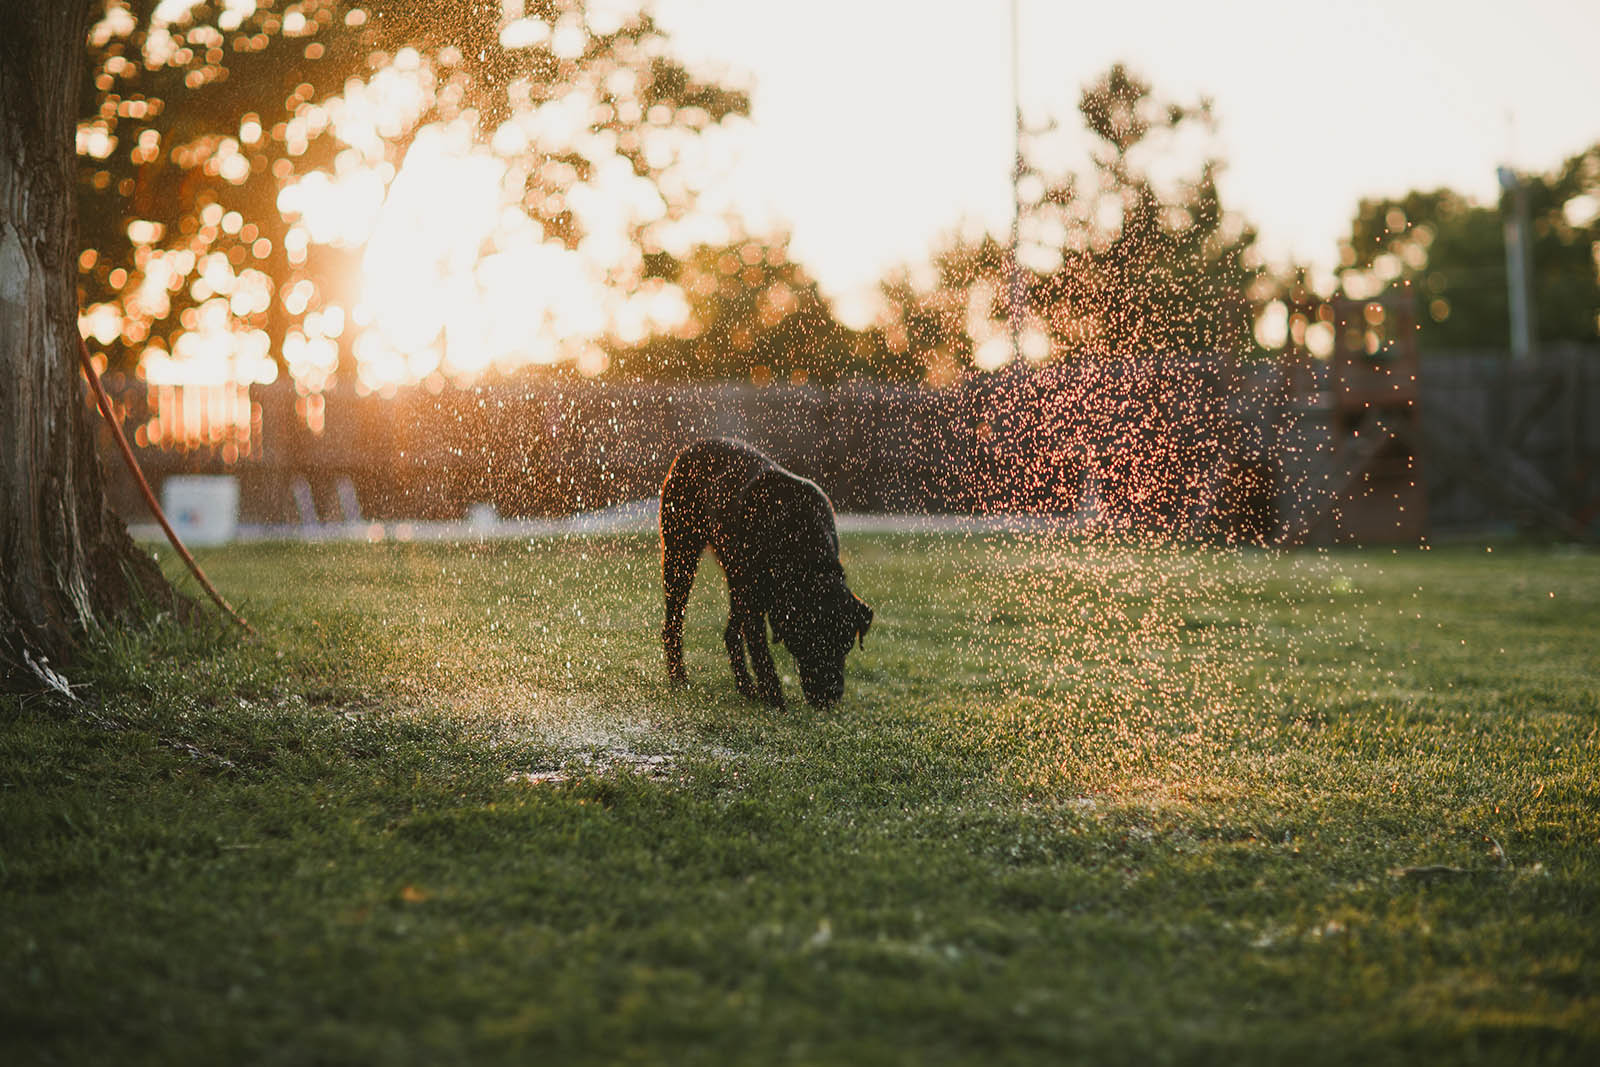 backlit photo of dog in the sprinkler by April Nienhuis